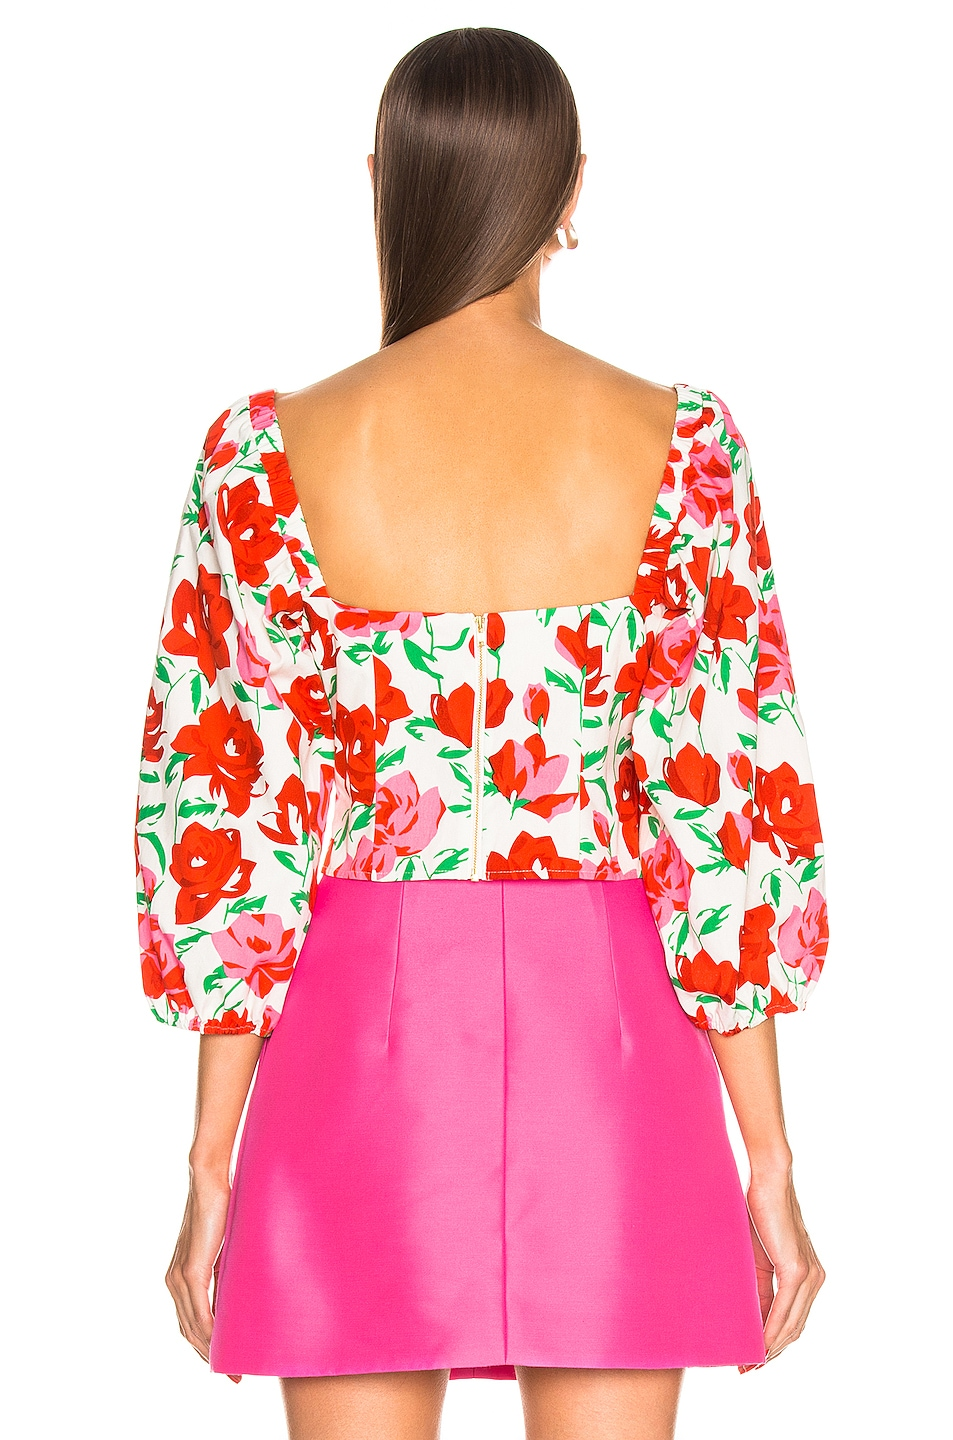 Image 3 of RIXO Veronica Top in White & Red Large Rose